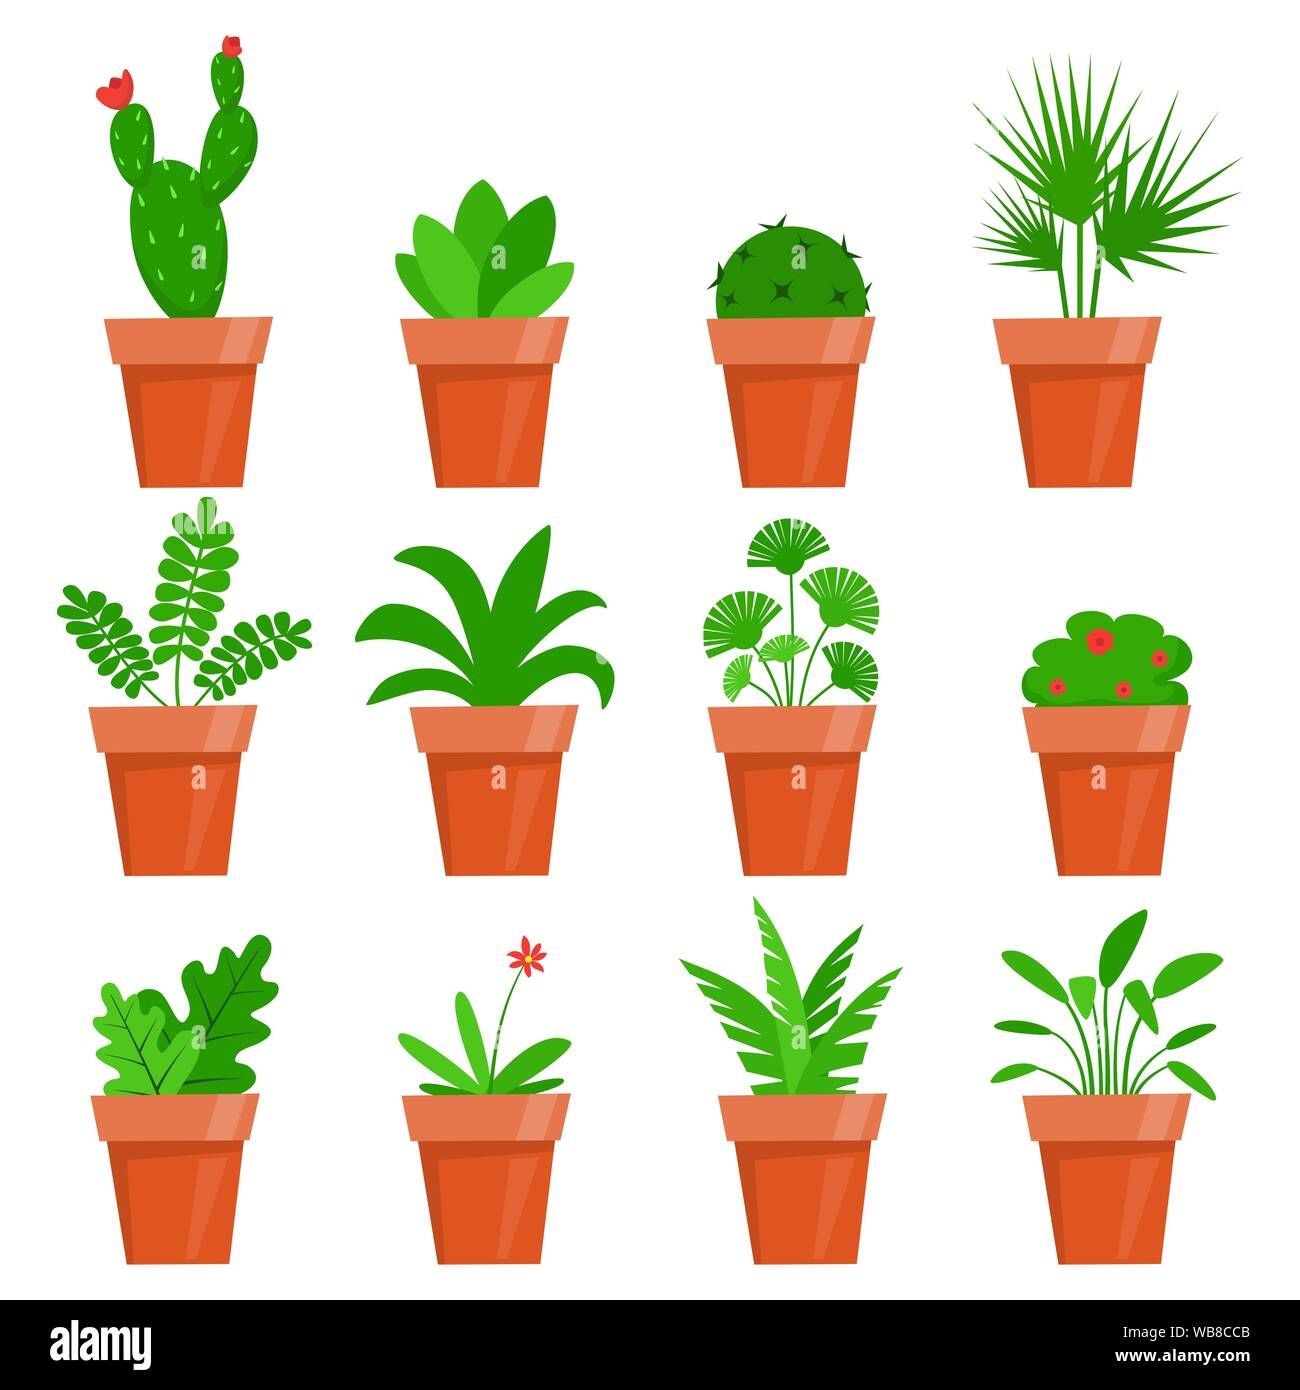 Potted Plants And Flowers Cute House Plants In Flat Style Vector Illustration Stock Vector Image Art Alamy